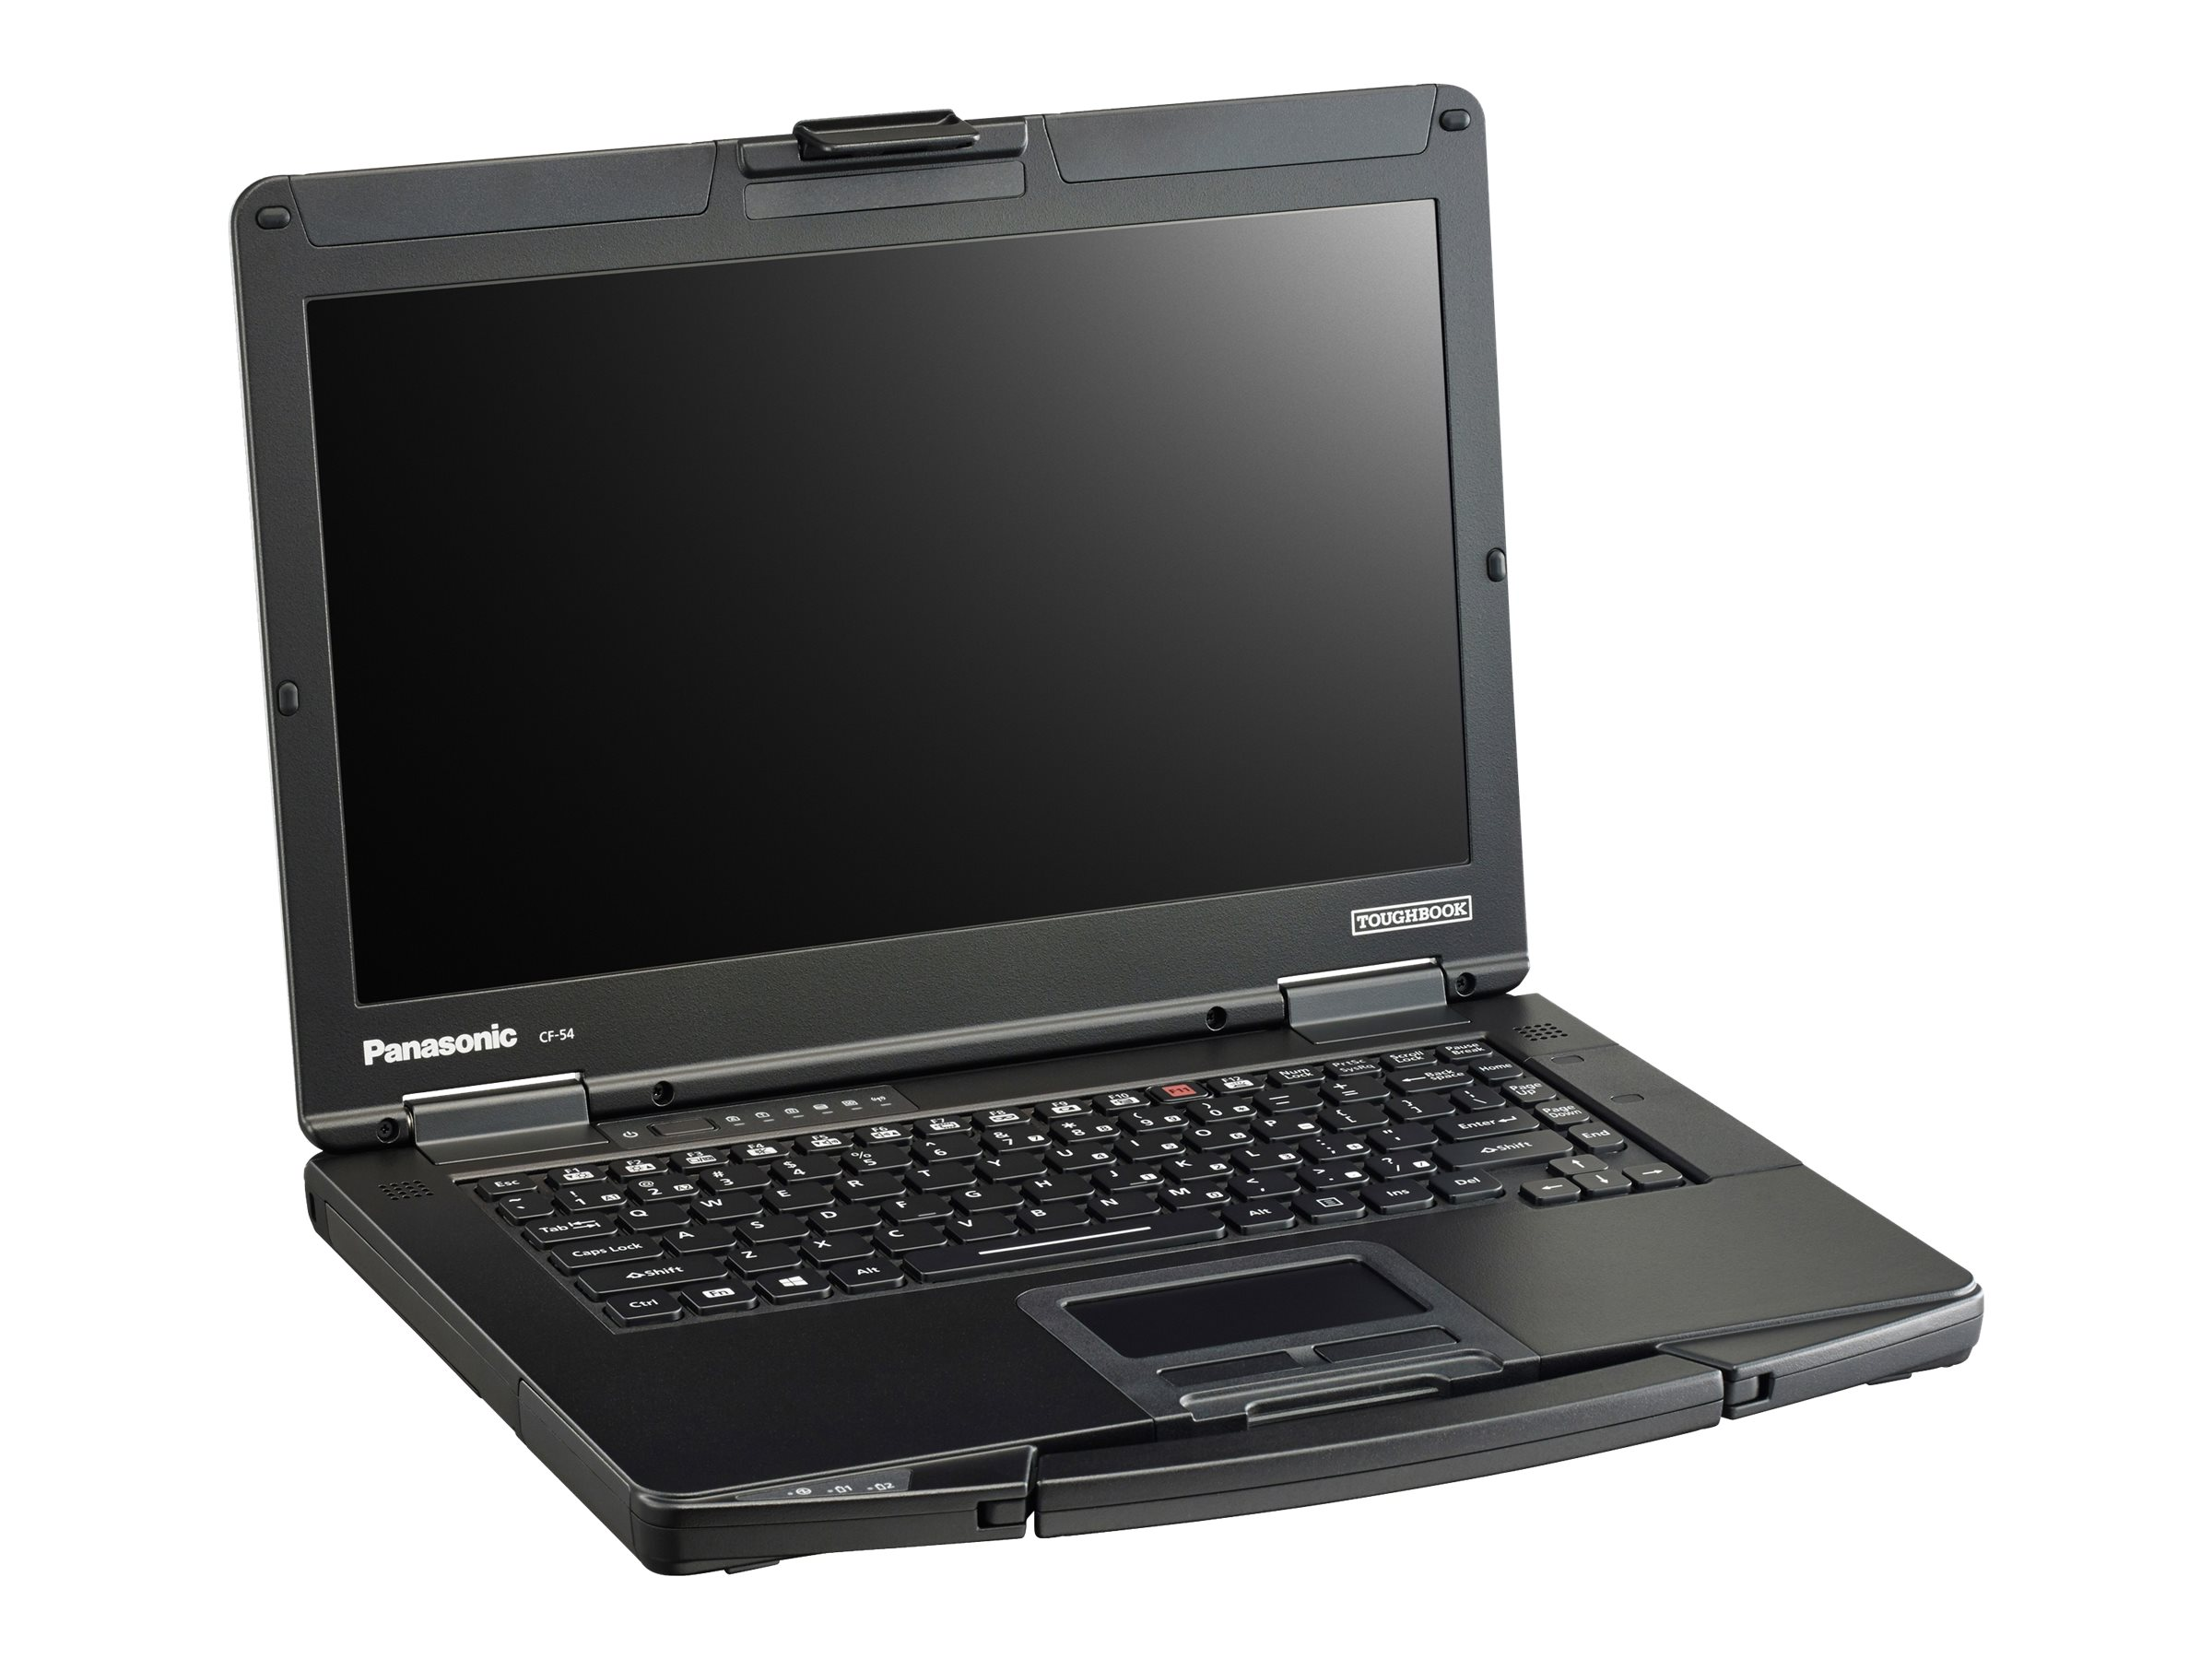 Panasonic Toughbook 54 500GB (7200RPM) 14, CF-54EP036VM